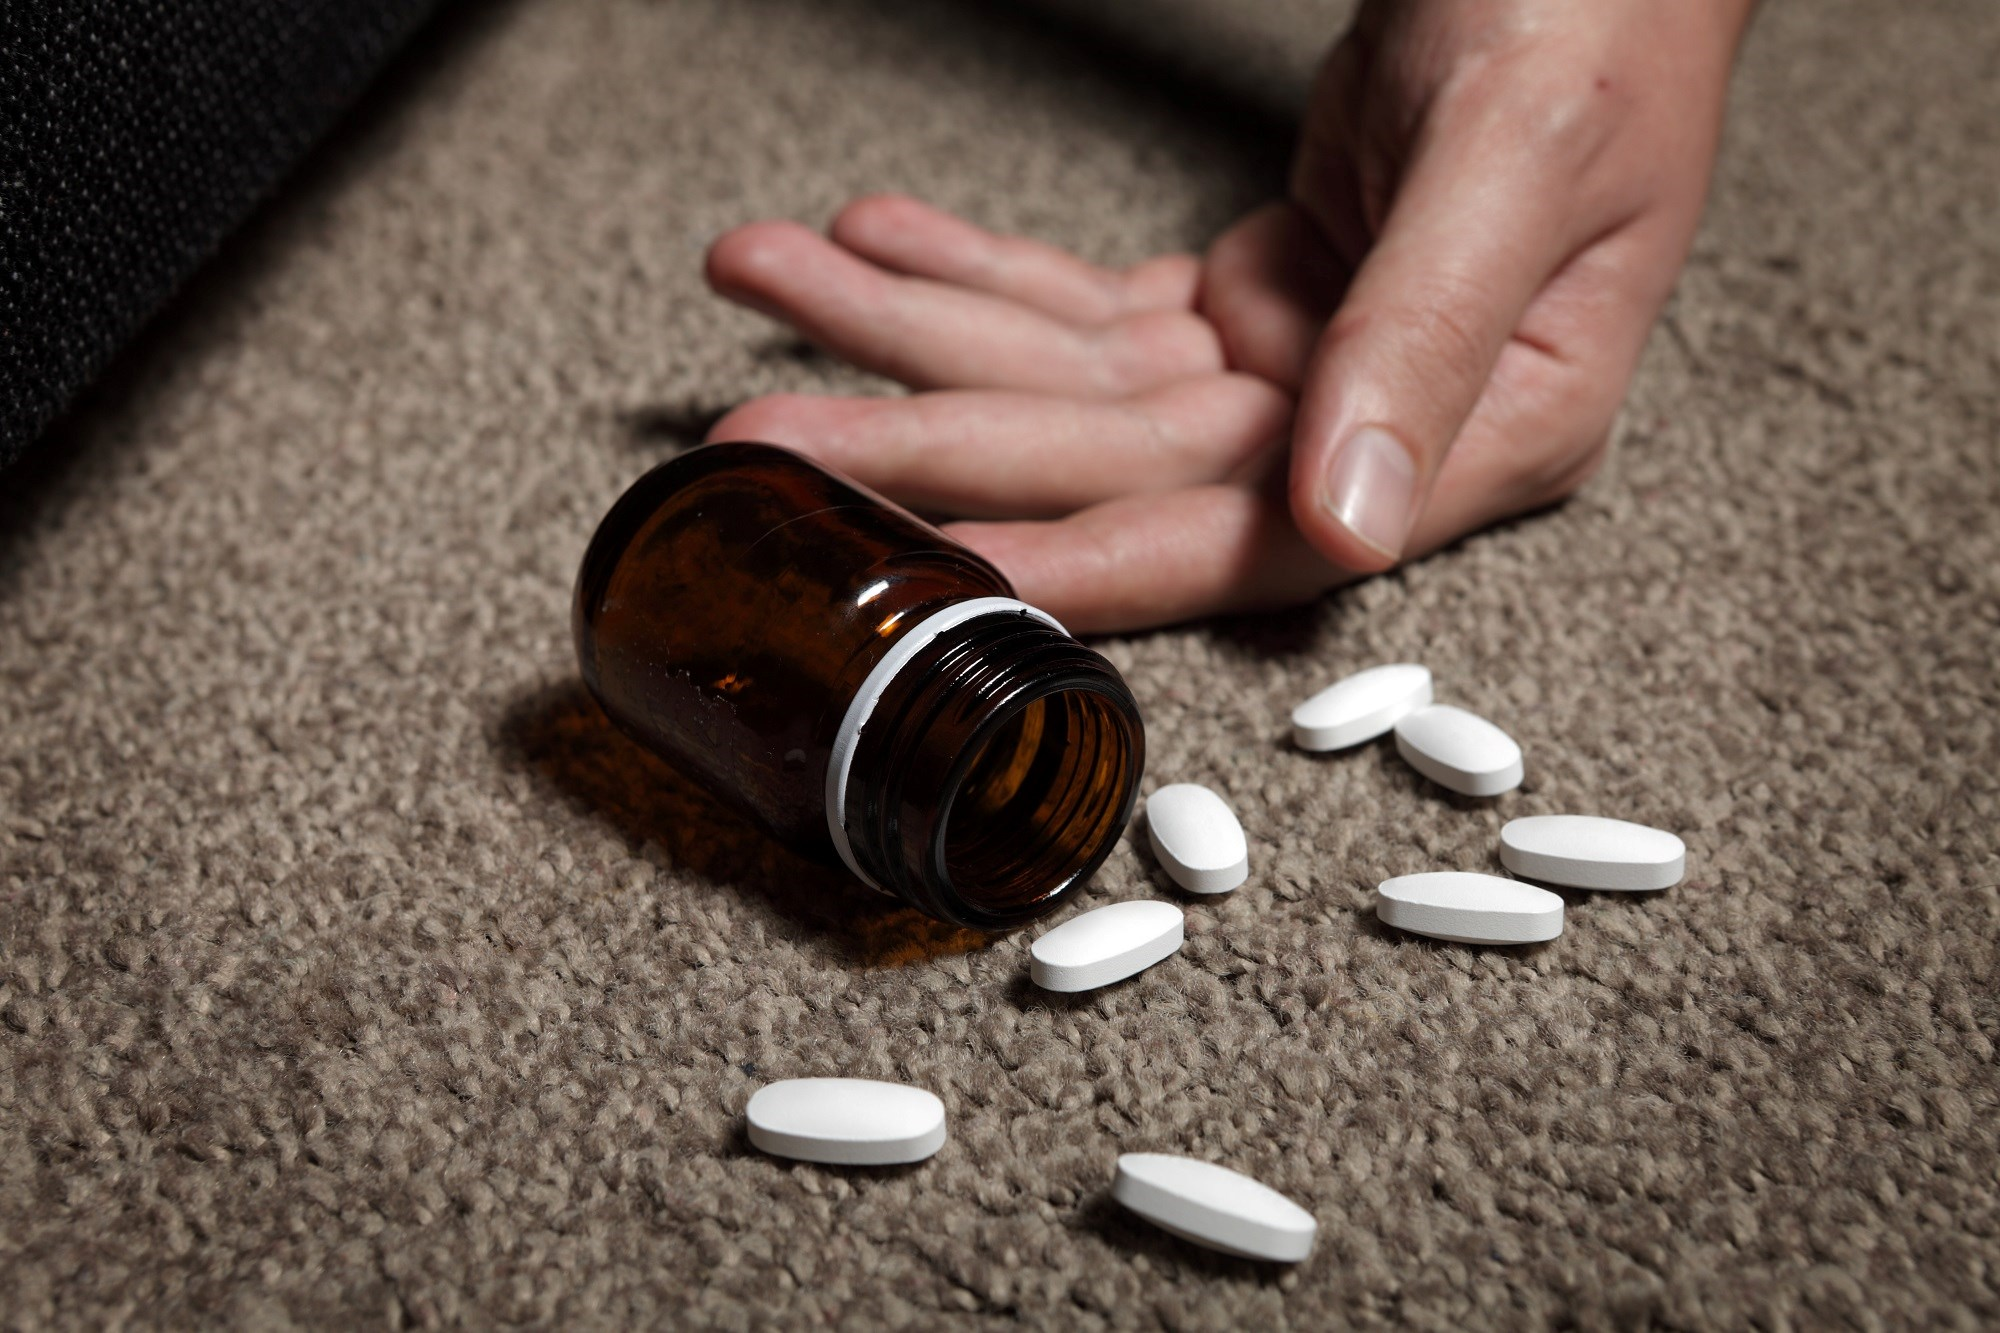 There is a marked excess of deaths among US adults who experience a nonfatal opioid overdose.